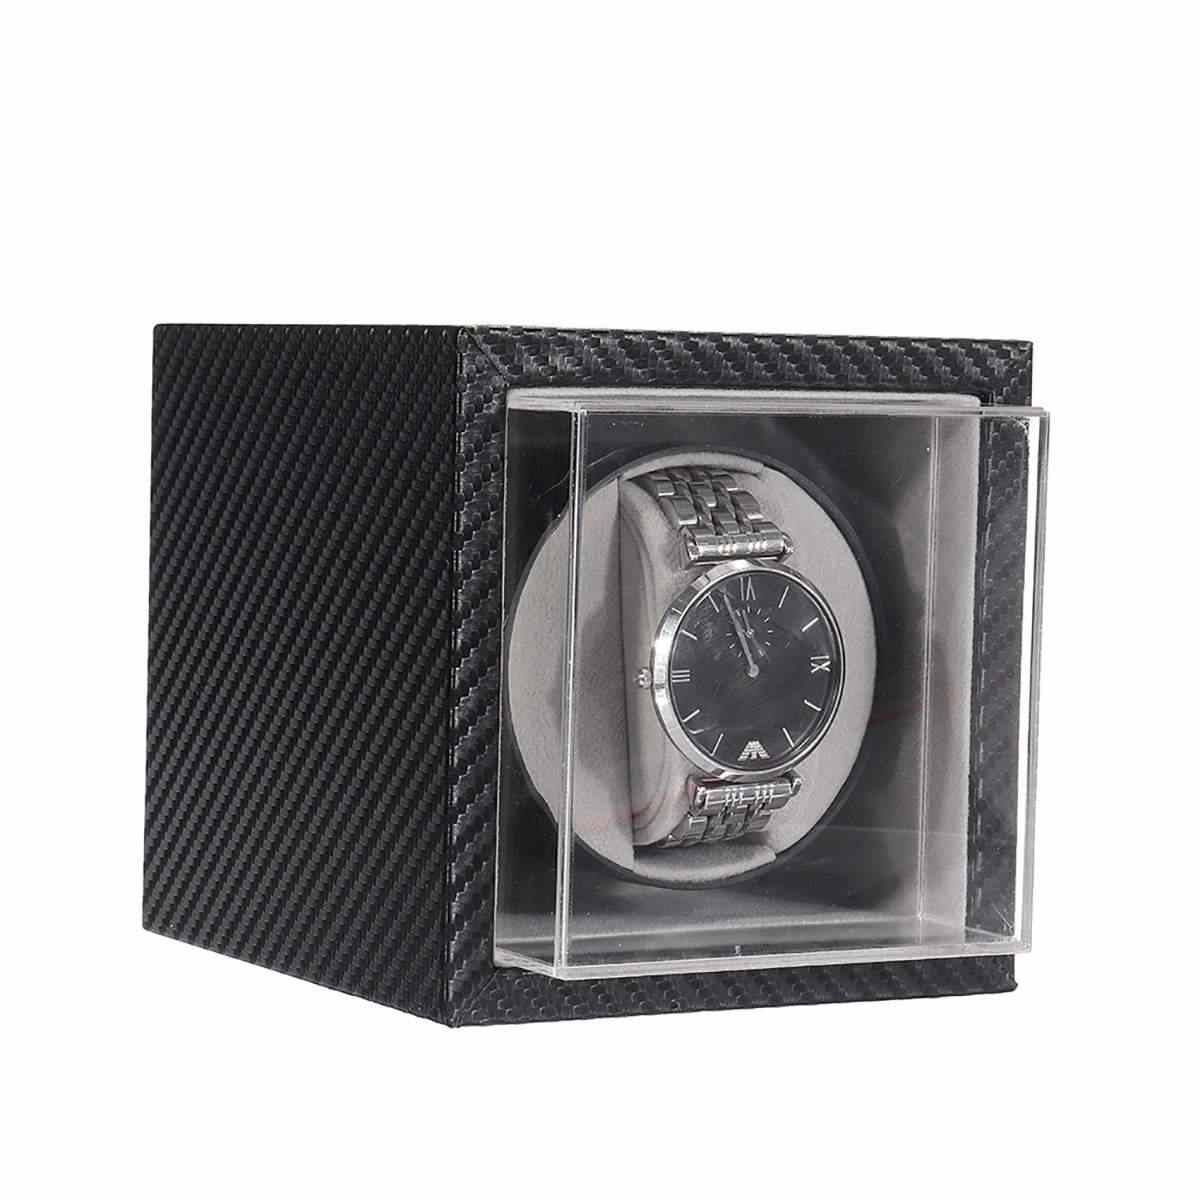 Automatic Watch Winder Mute Motor Shaker Carbon Fiber Watches Box Jewelry Display Storage Case Organizer Watches Accessories